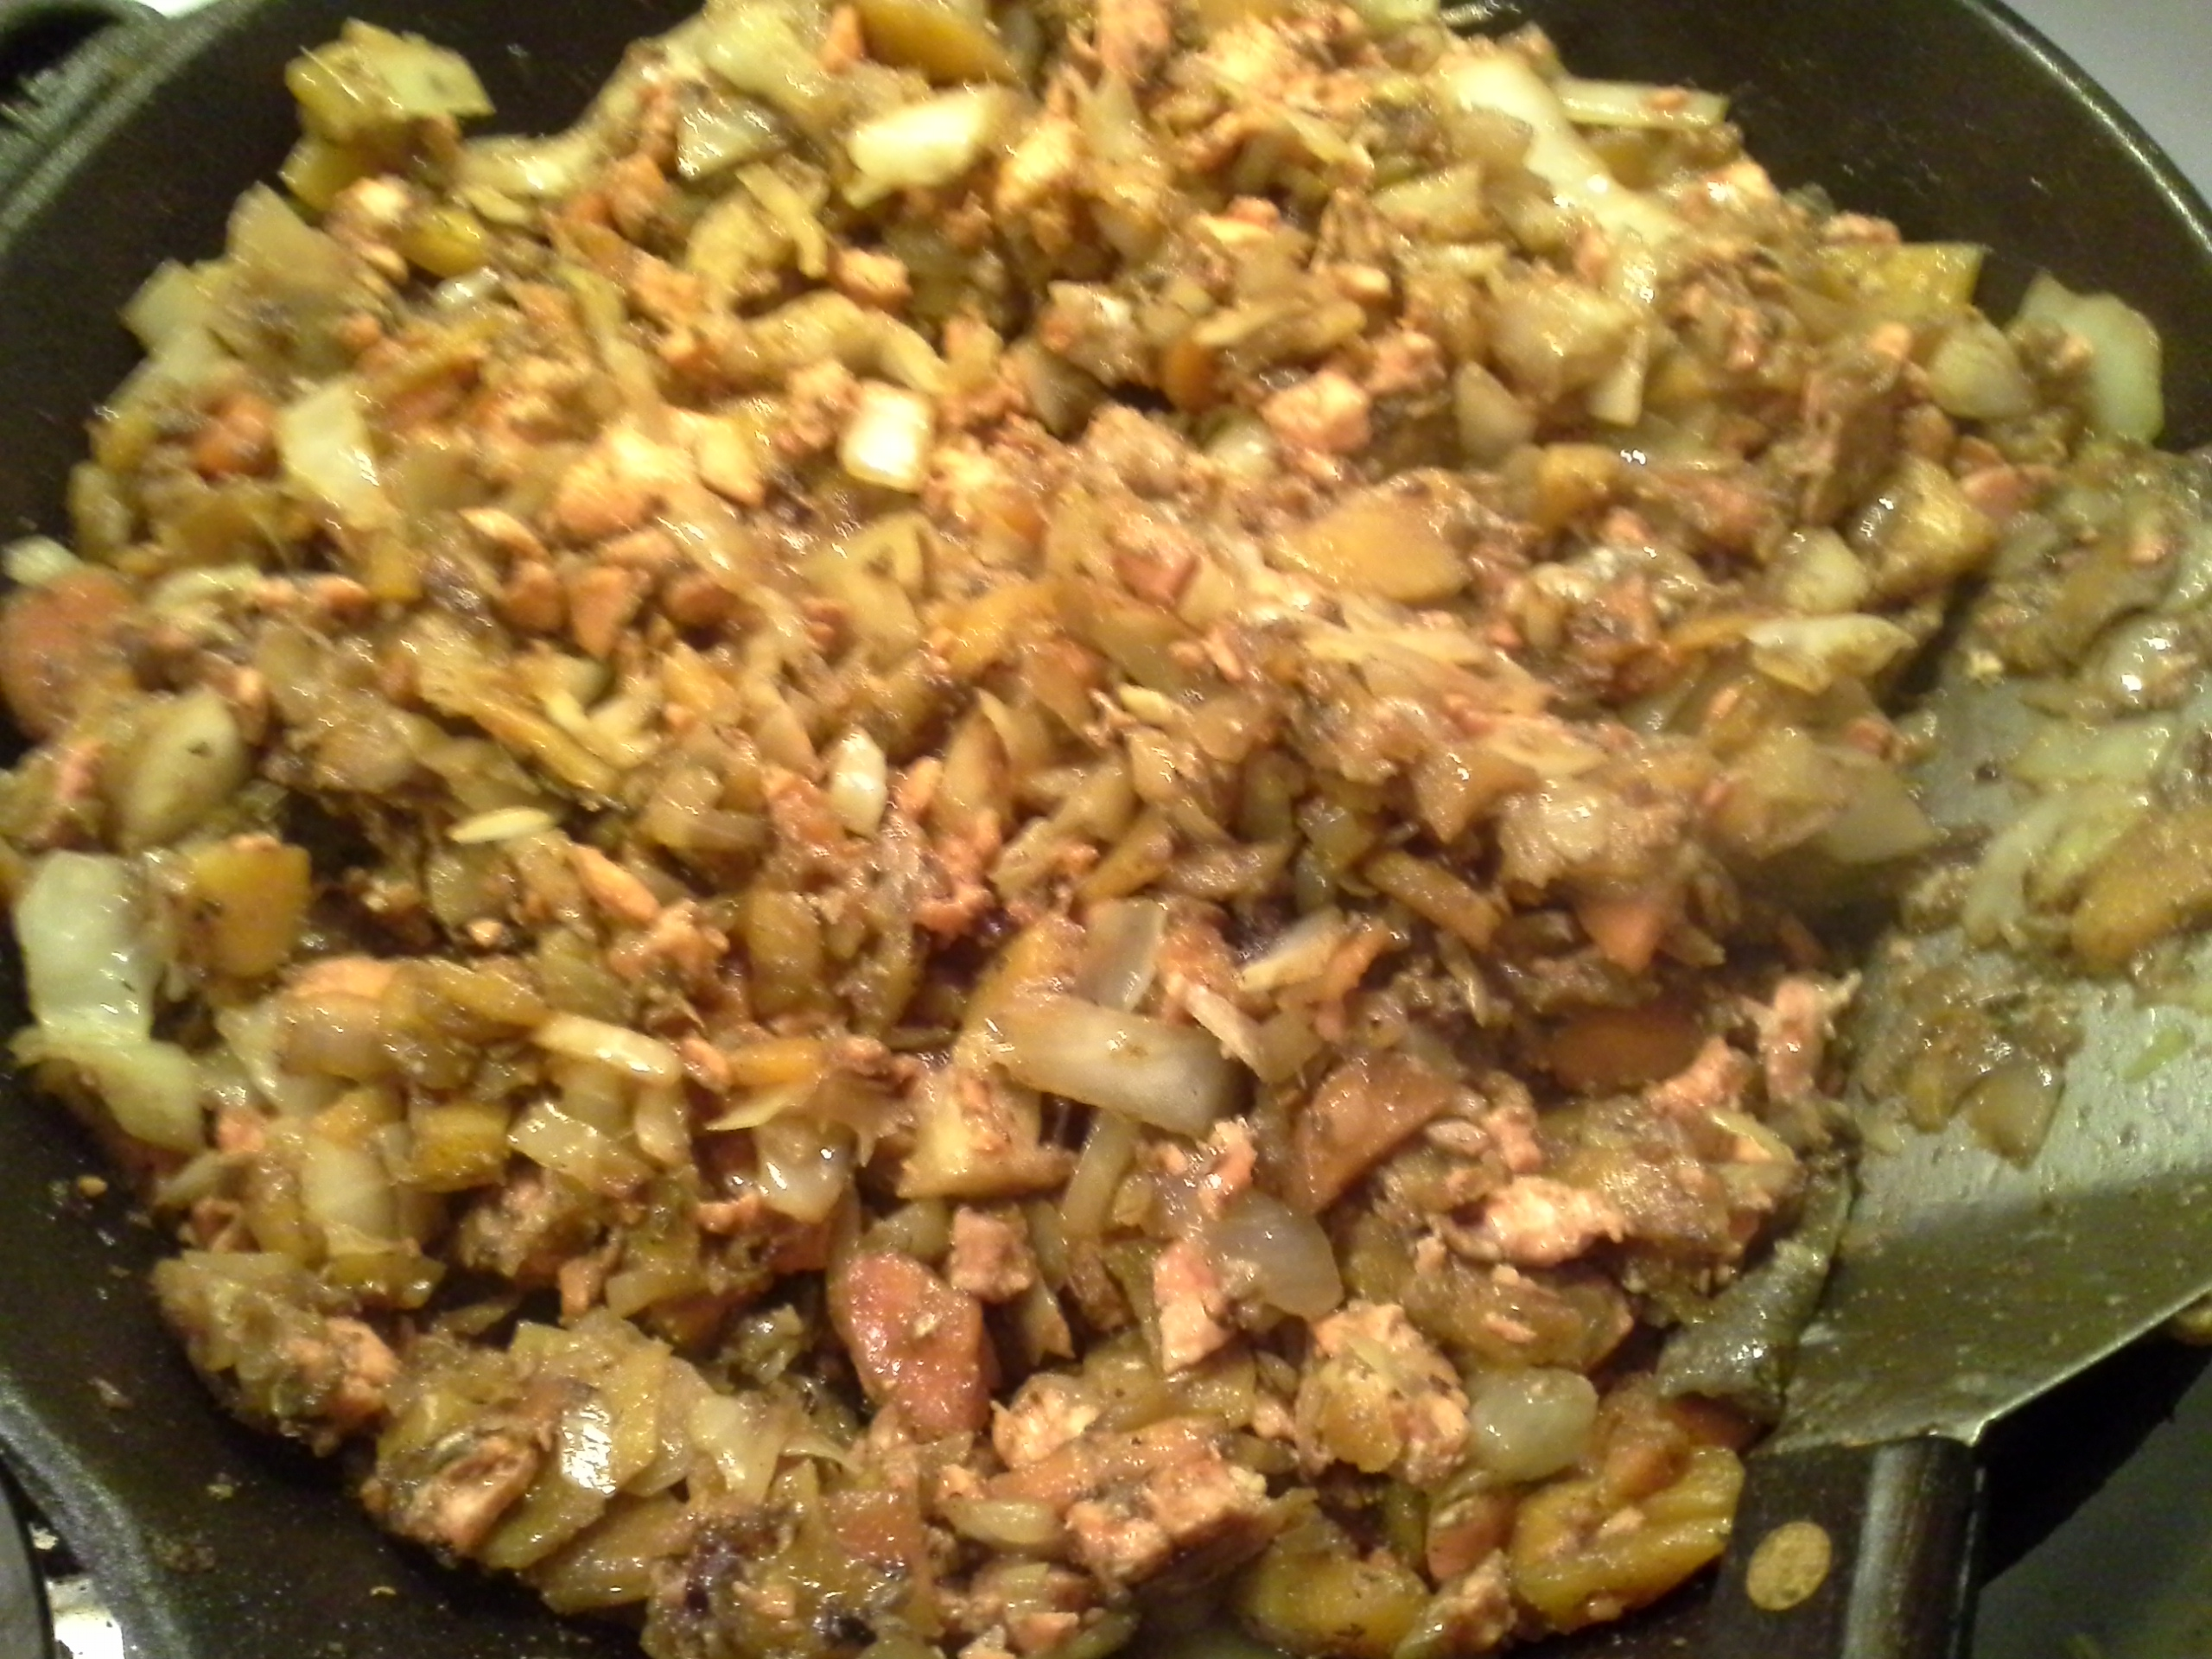 Dinner: 10:50 p.m. | 8 oz. salmon, 1 large carrot, 1/6 head cabbage, 1/2 sweet onion, 2 Tbsp. coconut oil, herbs & spices